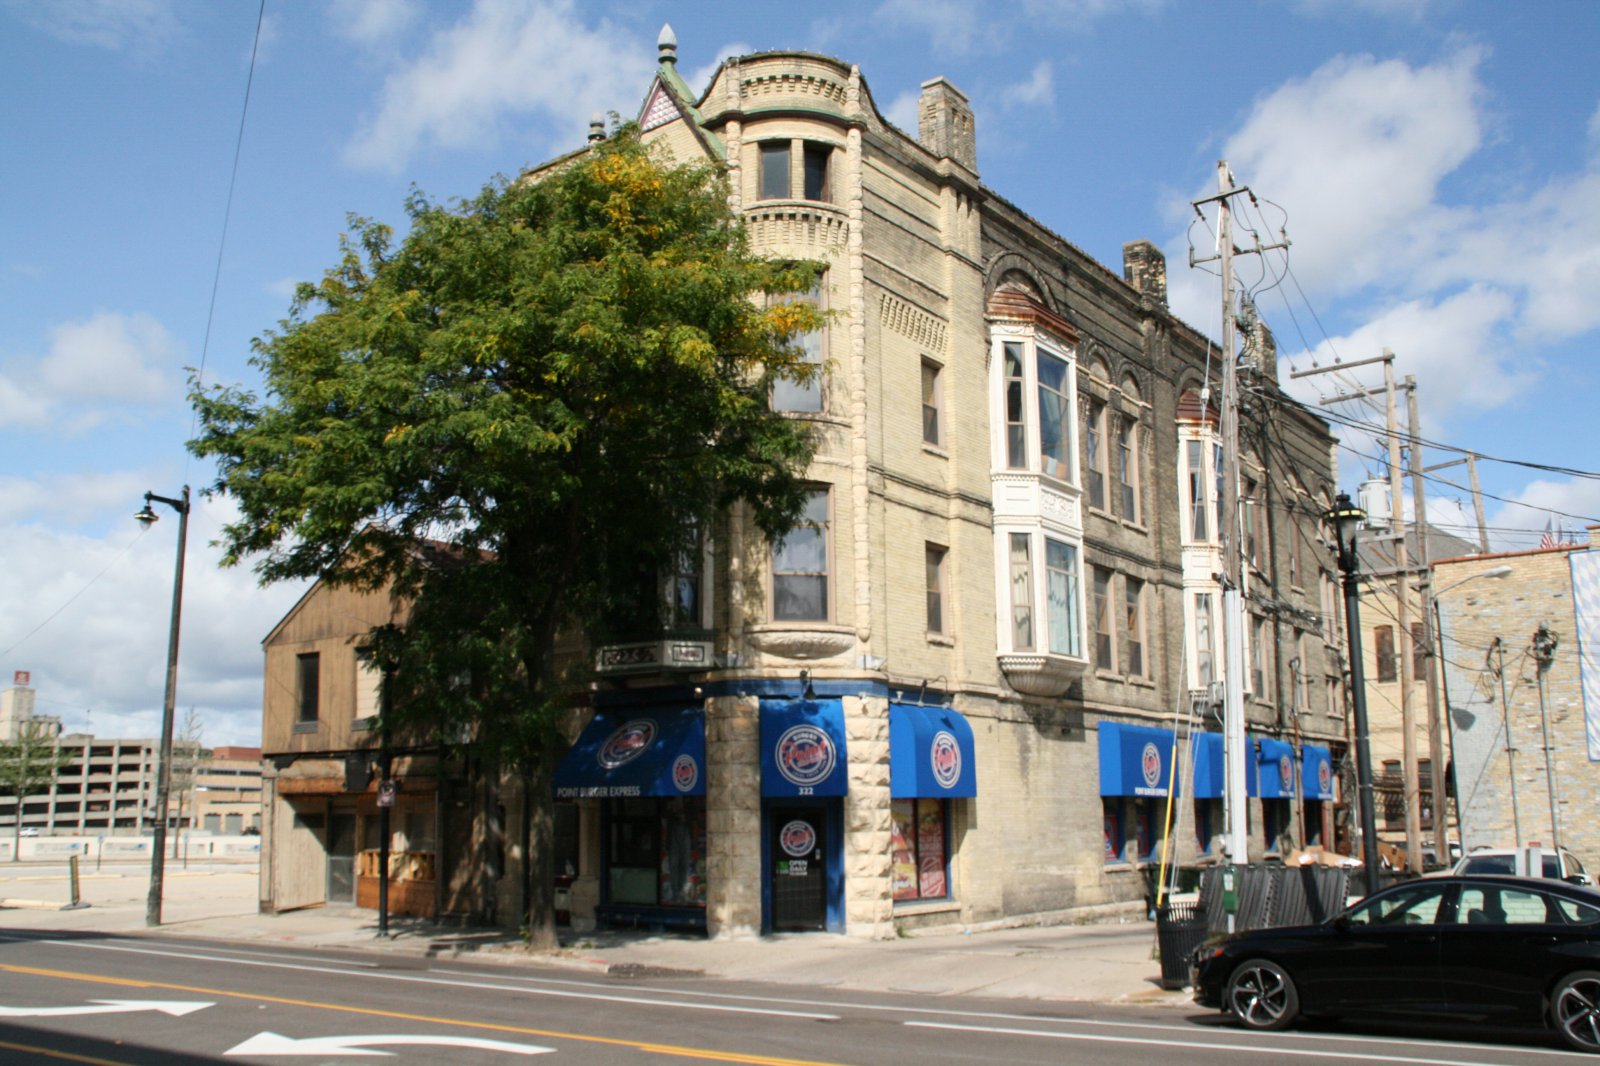 322 and 324 W. State Street Structures